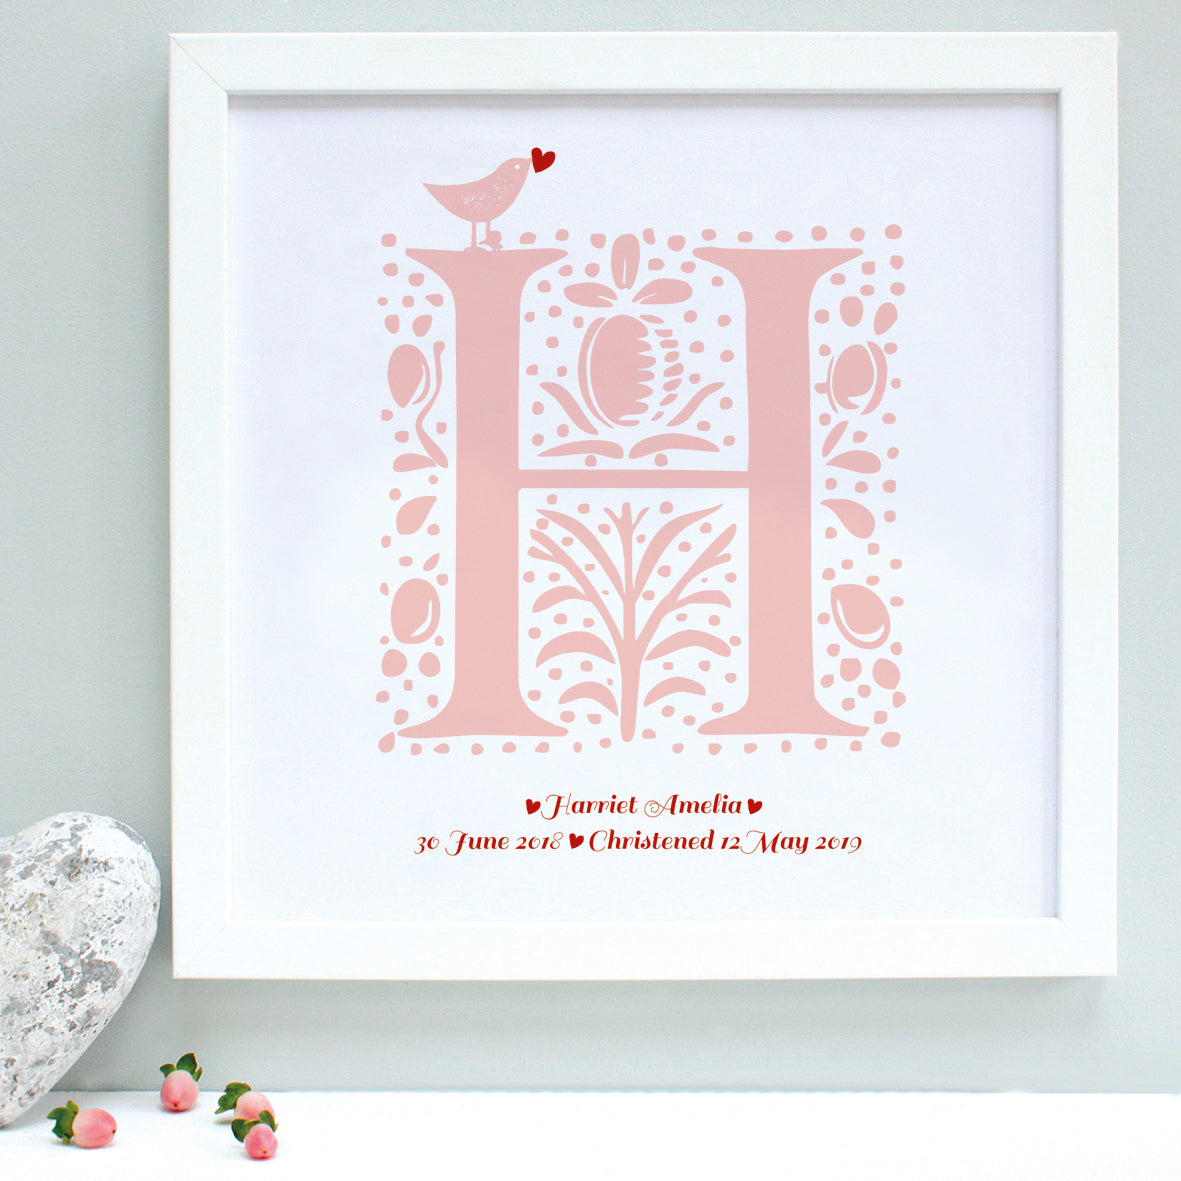 Personalised New Baby Letter Framed Print